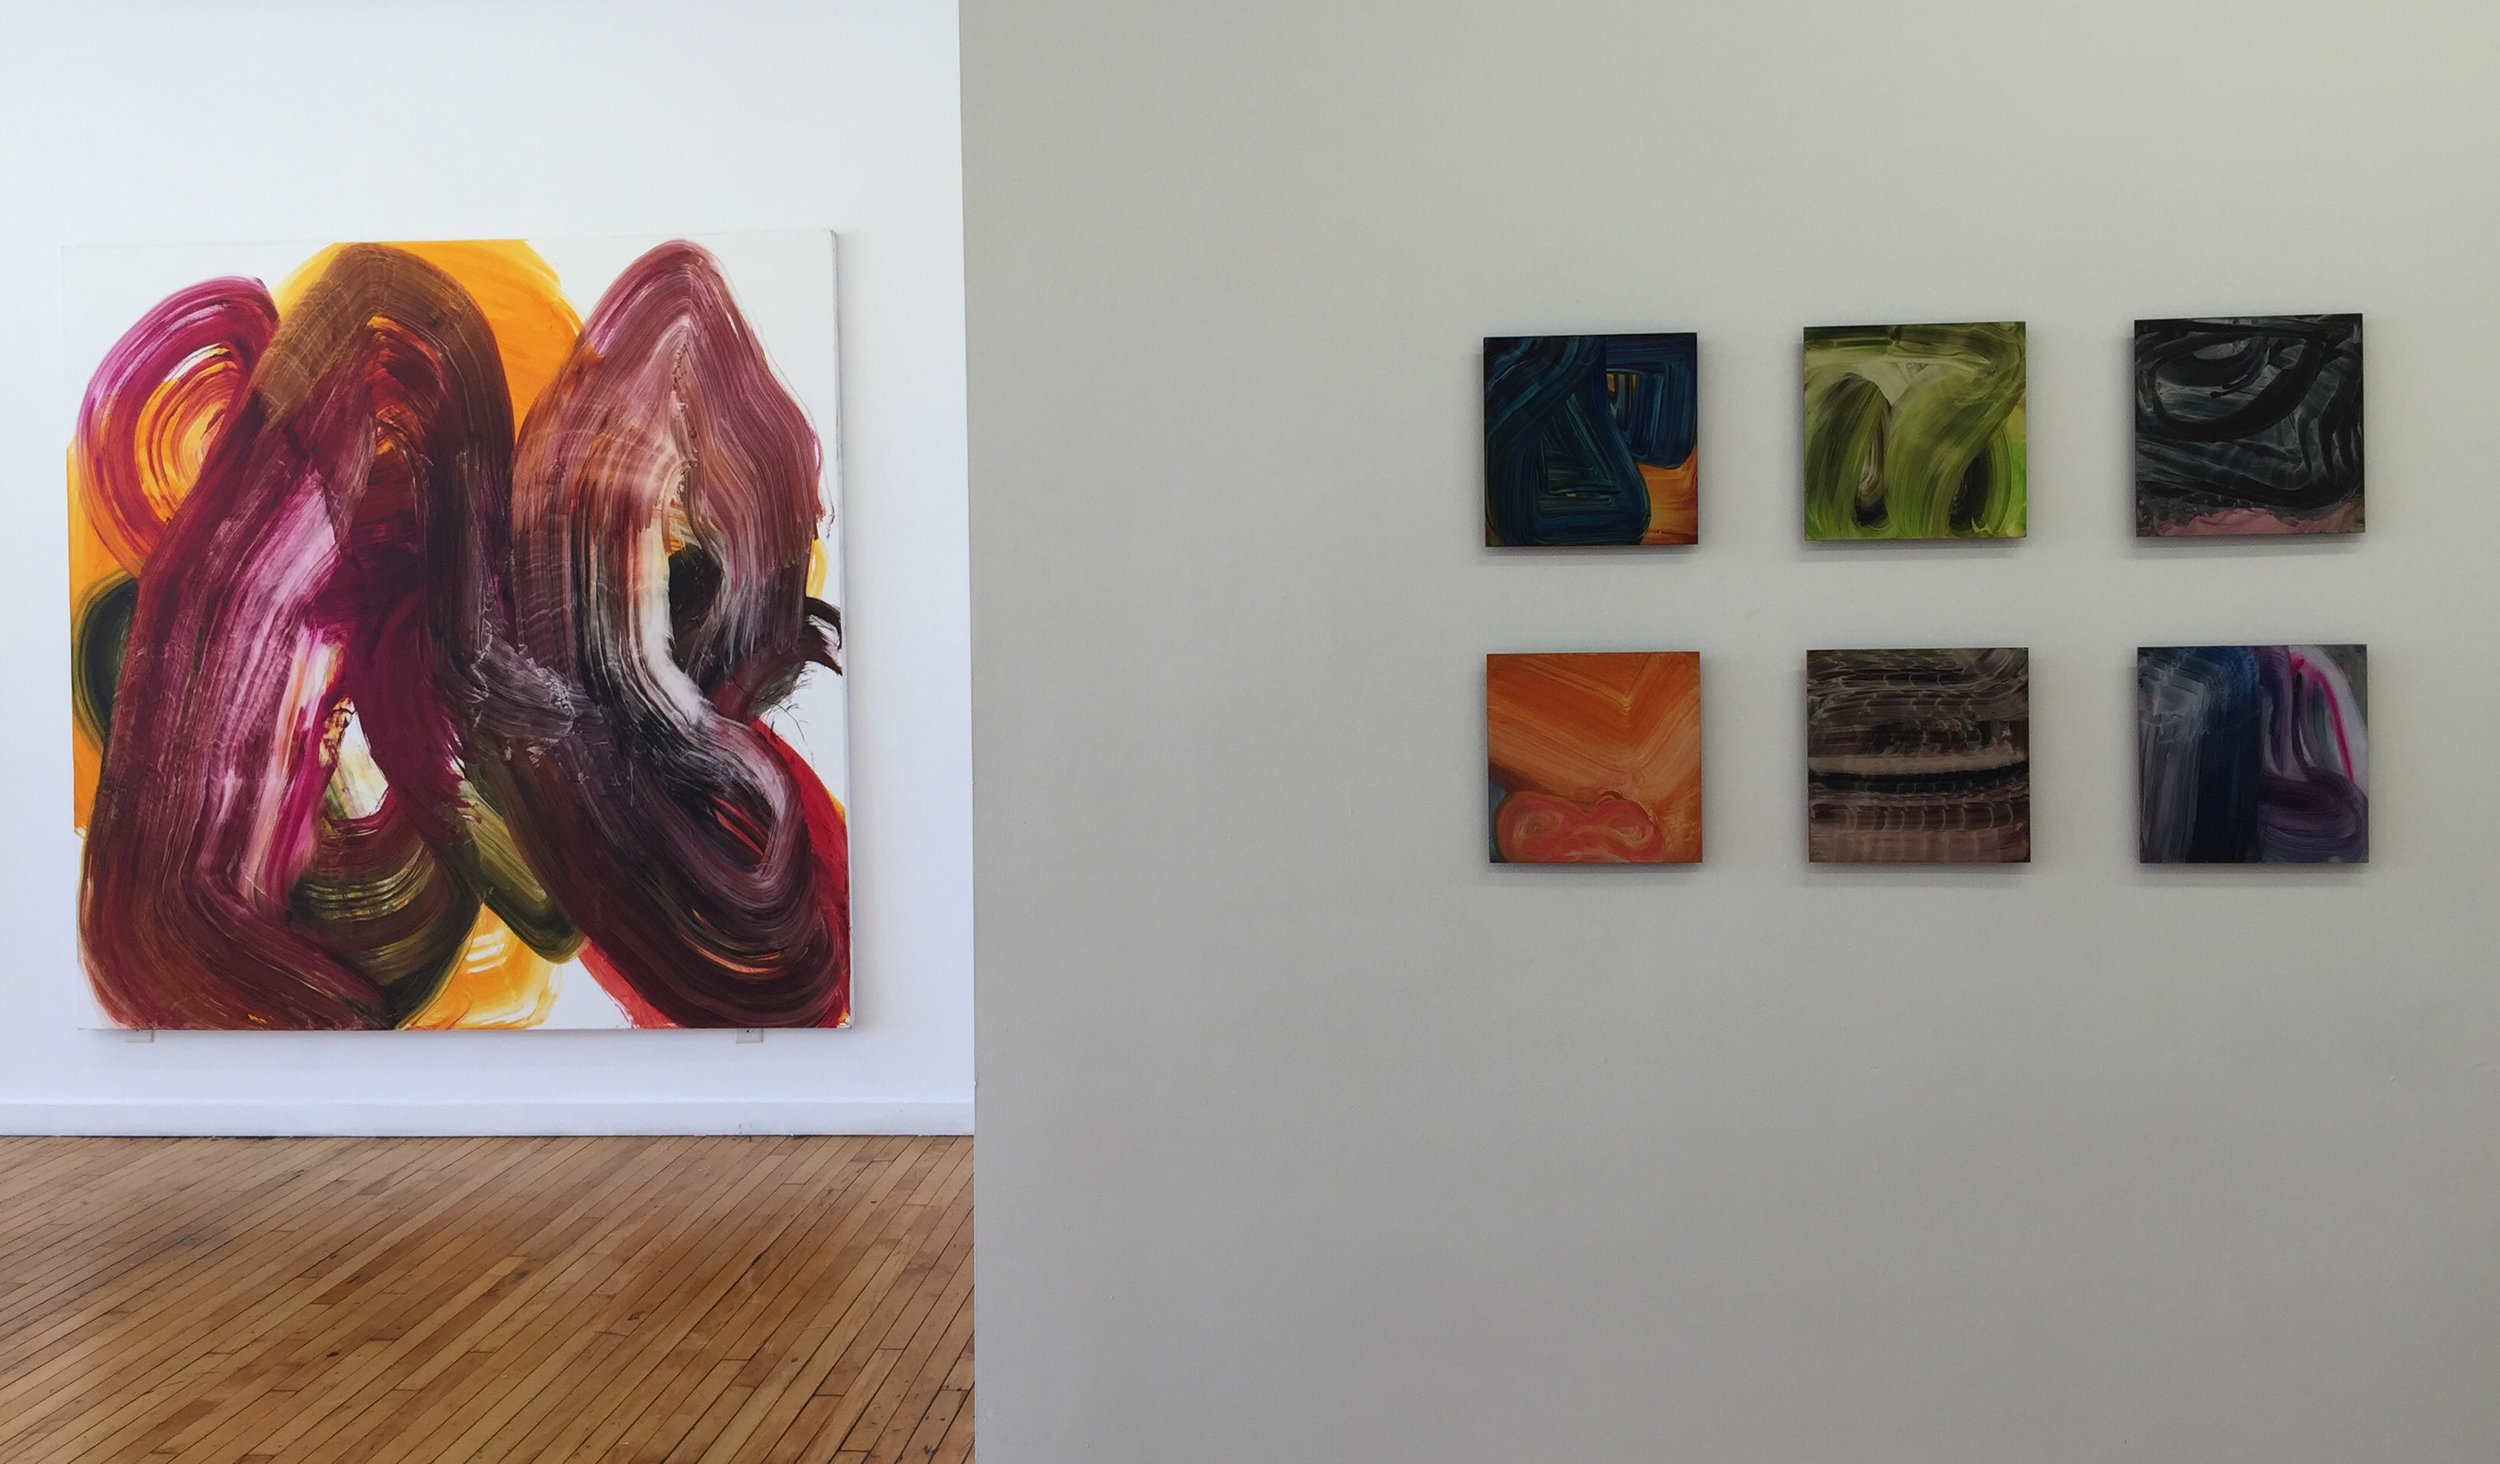 CUAC, Salt Lake City, UT - Install pics, July 2016